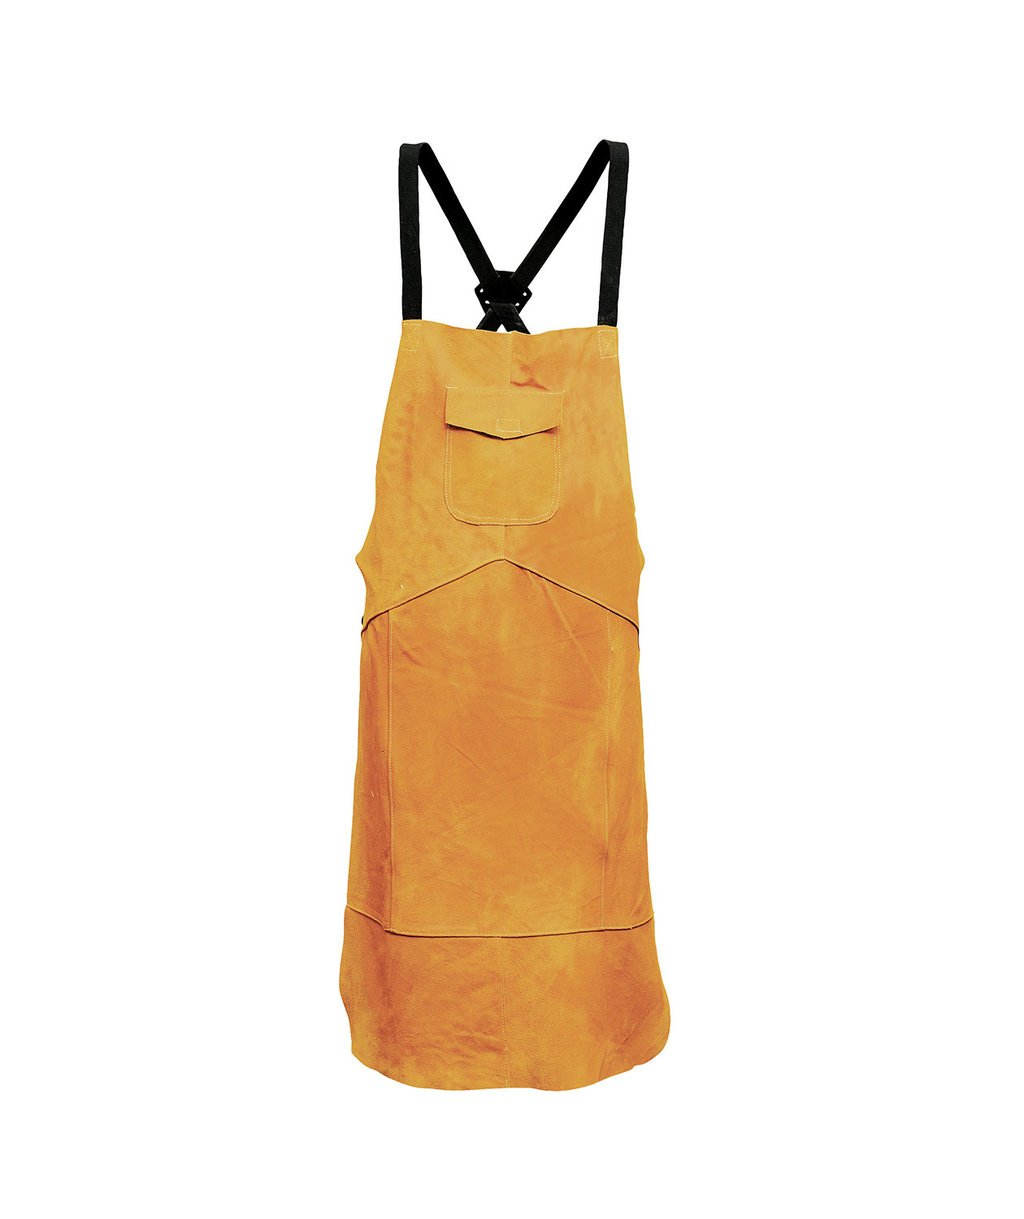 Portwest leather welding apron, Orange